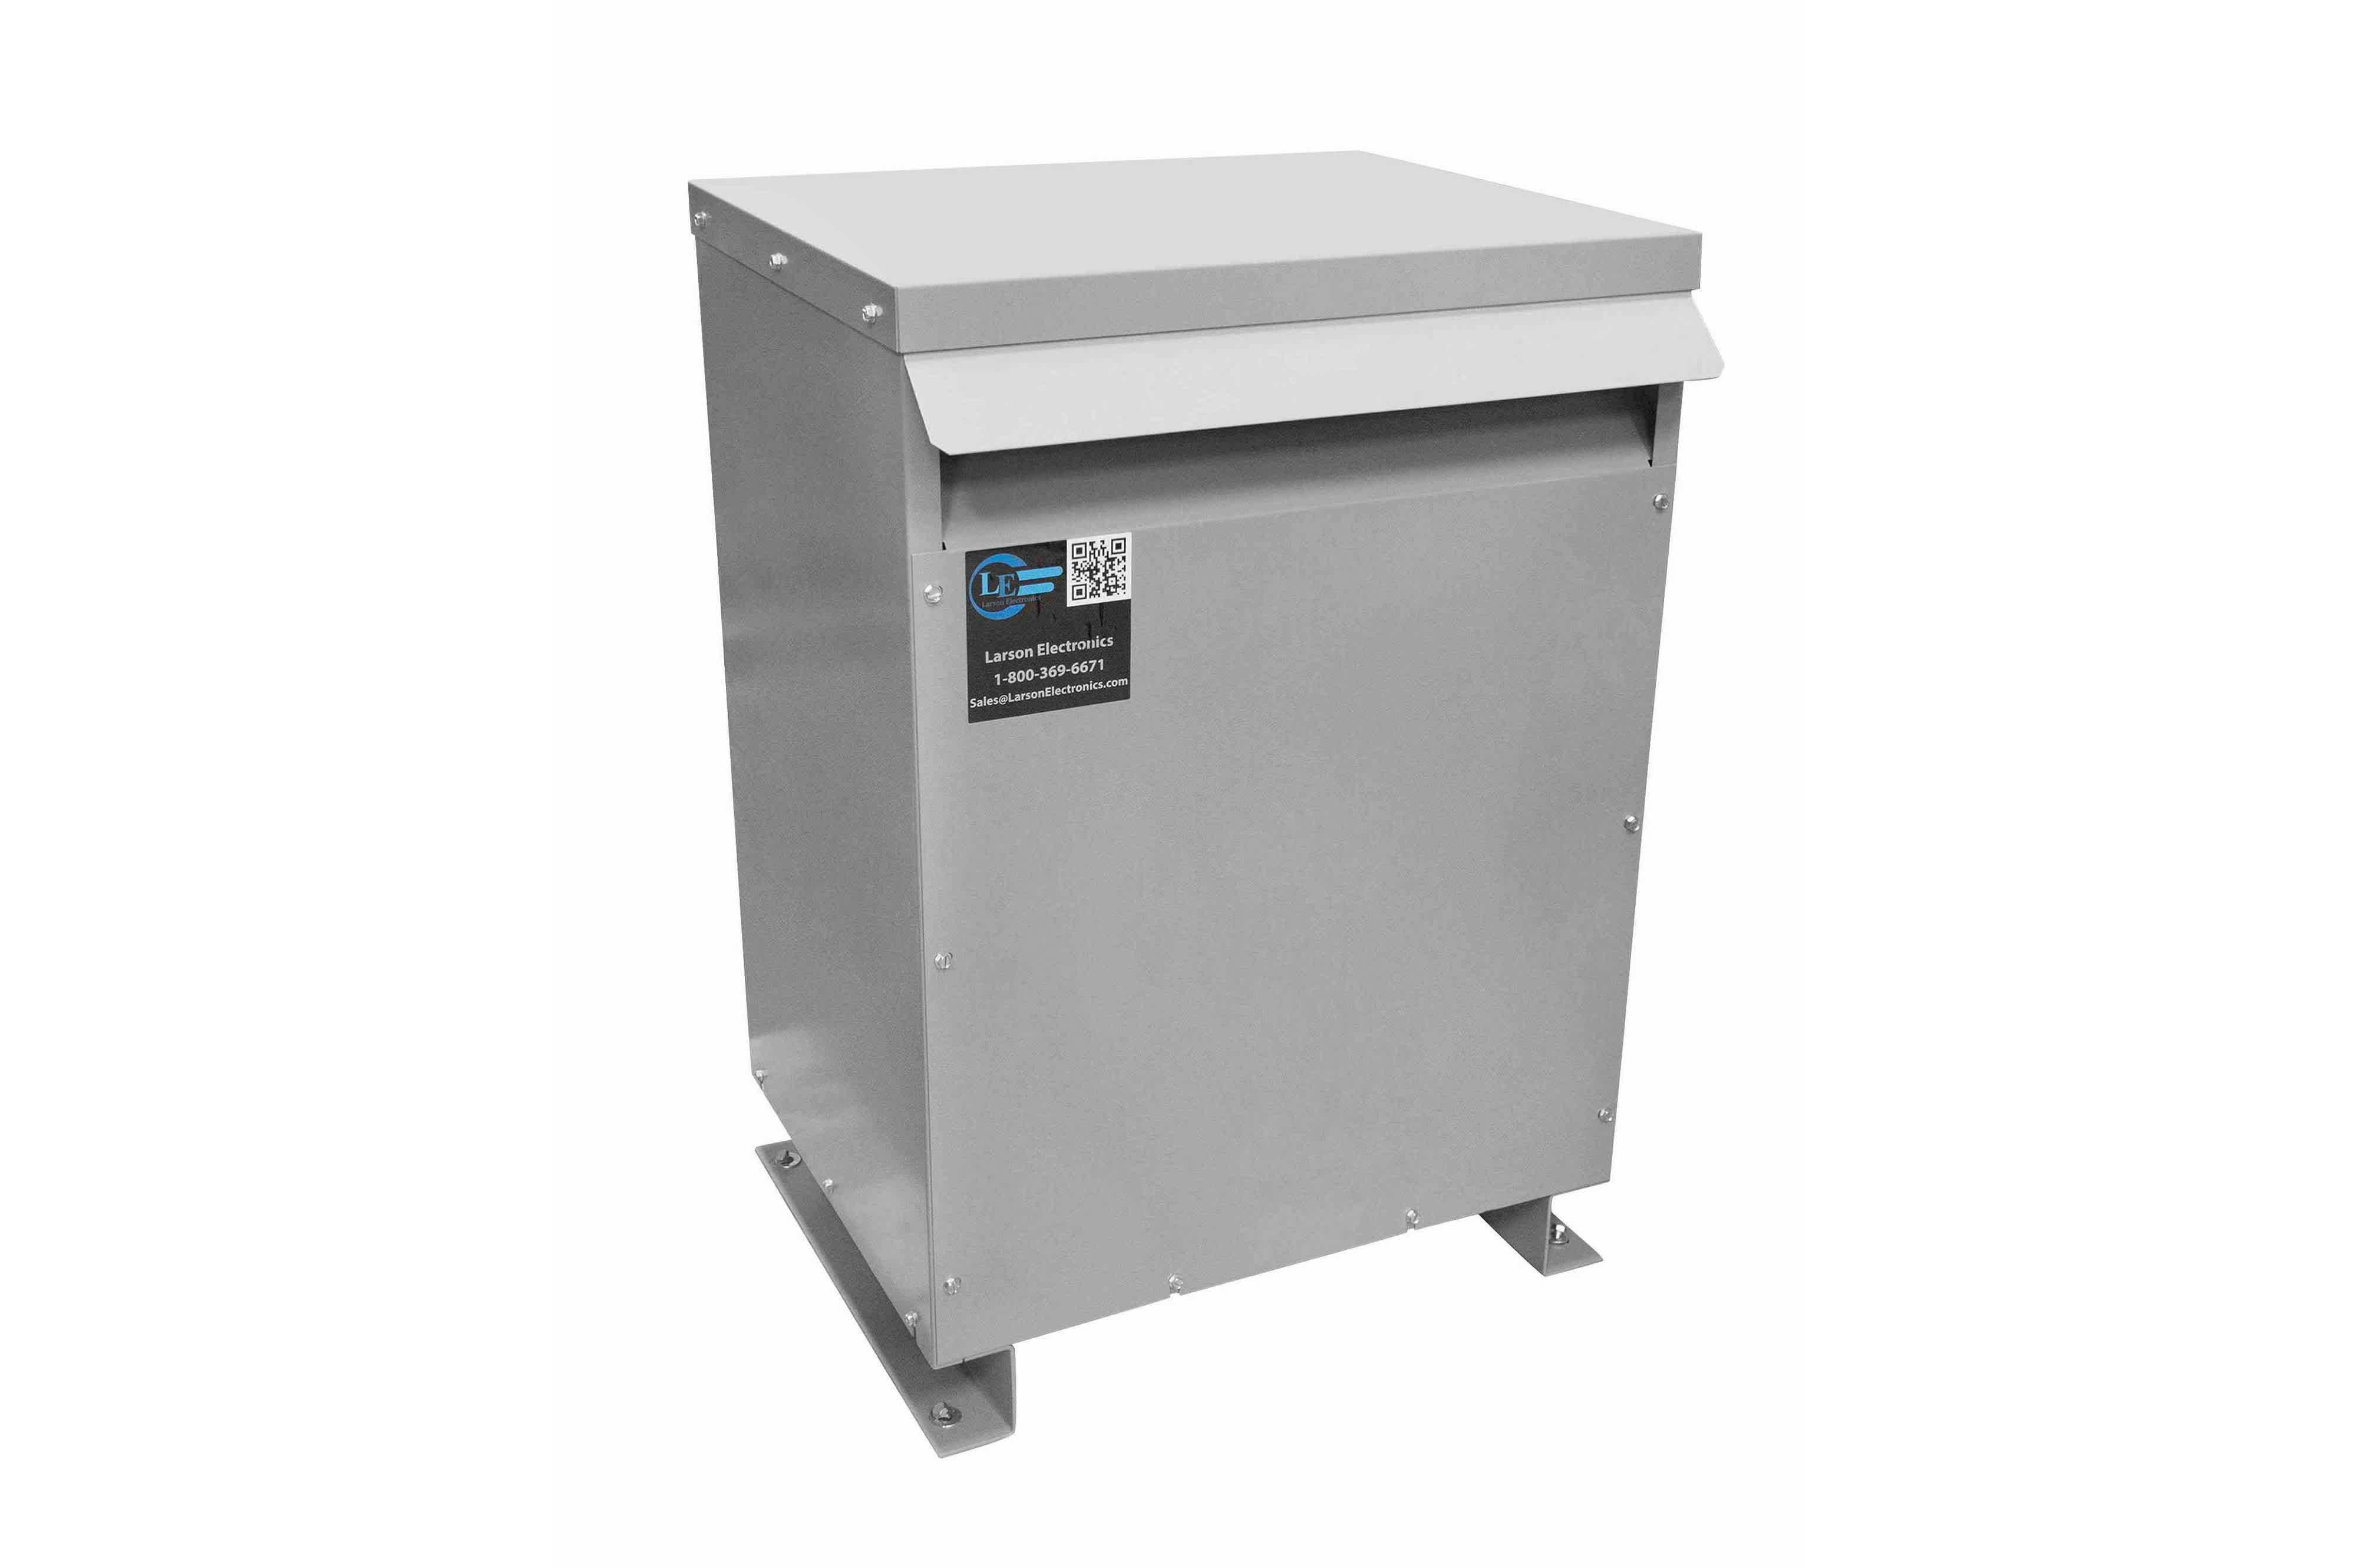 50 kVA 3PH Isolation Transformer, 415V Wye Primary, 480Y/277 Wye-N Secondary, N3R, Ventilated, 60 Hz